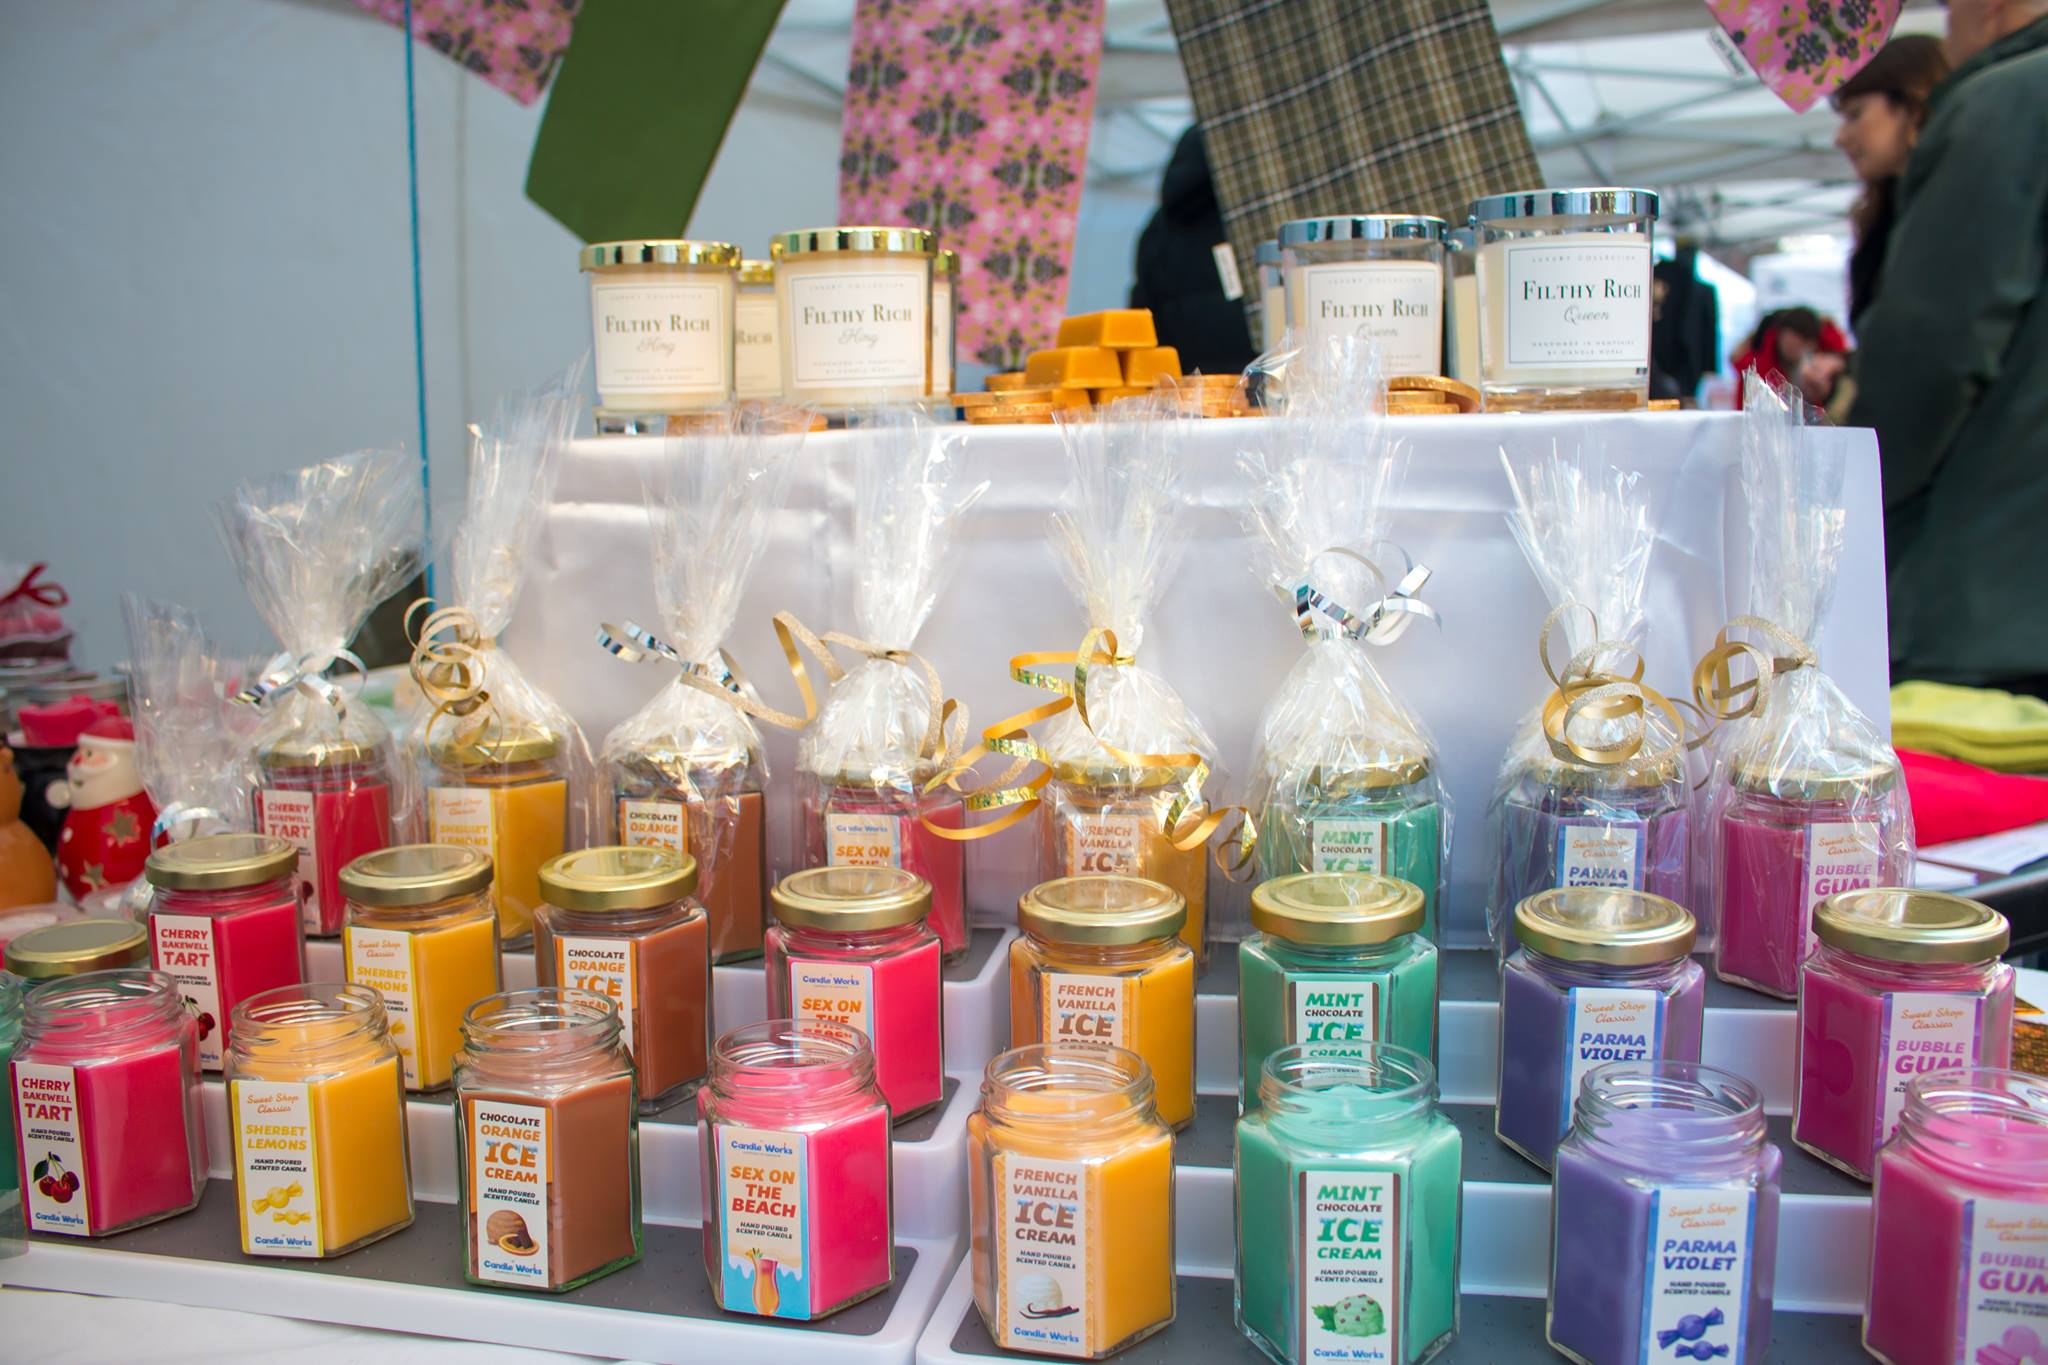 Candle Works UK - Handmade Scented Candles & Wax Melts